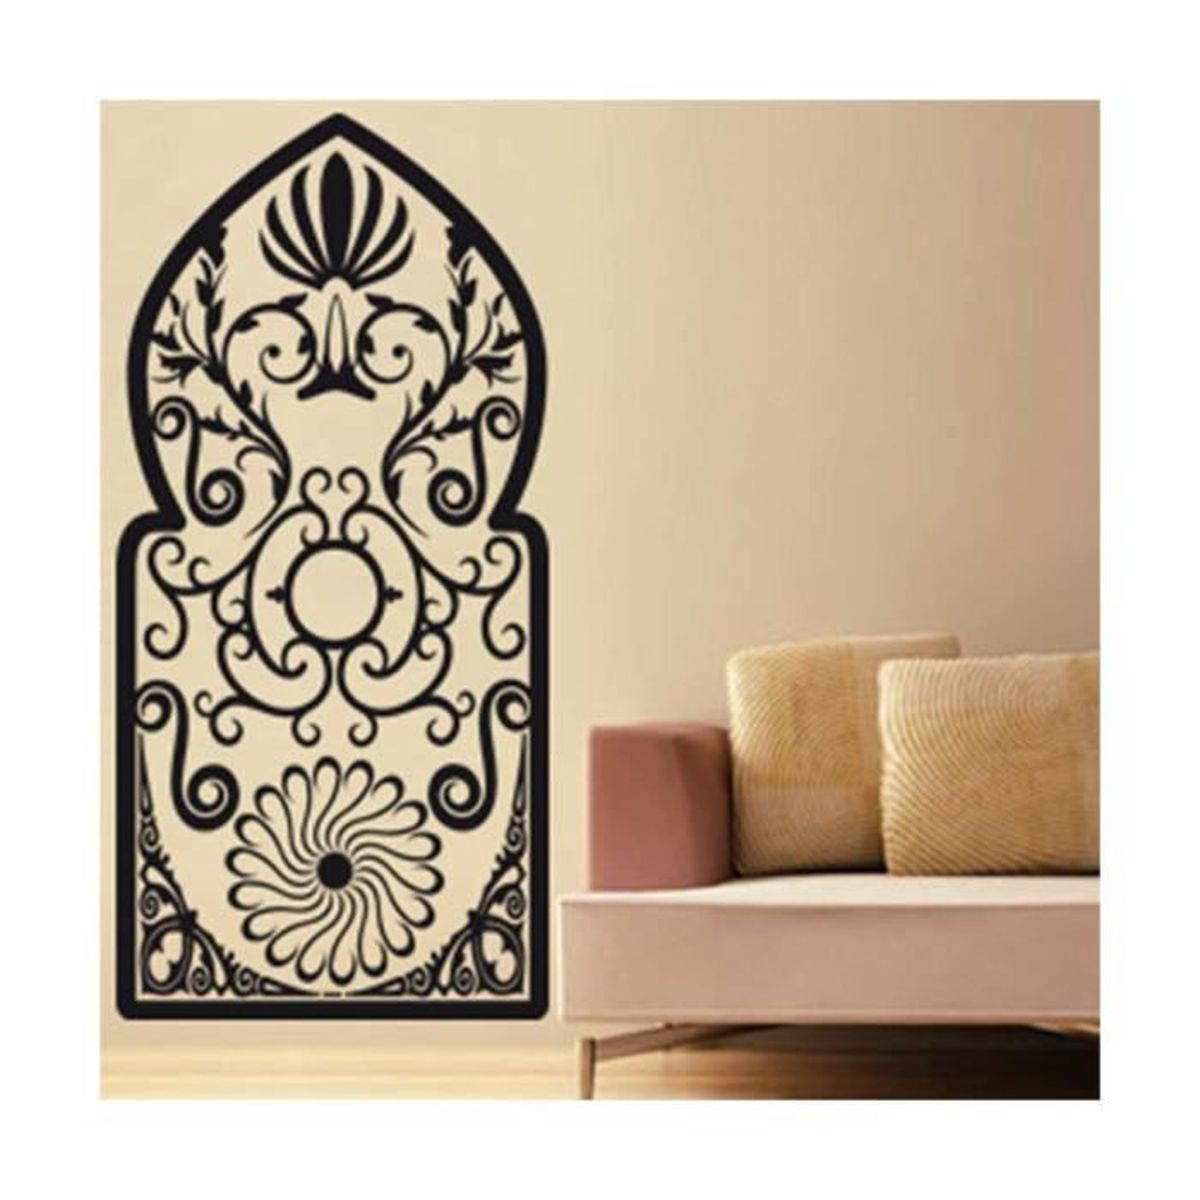 sticker porte orientale noir achat vente stickers cdiscount. Black Bedroom Furniture Sets. Home Design Ideas